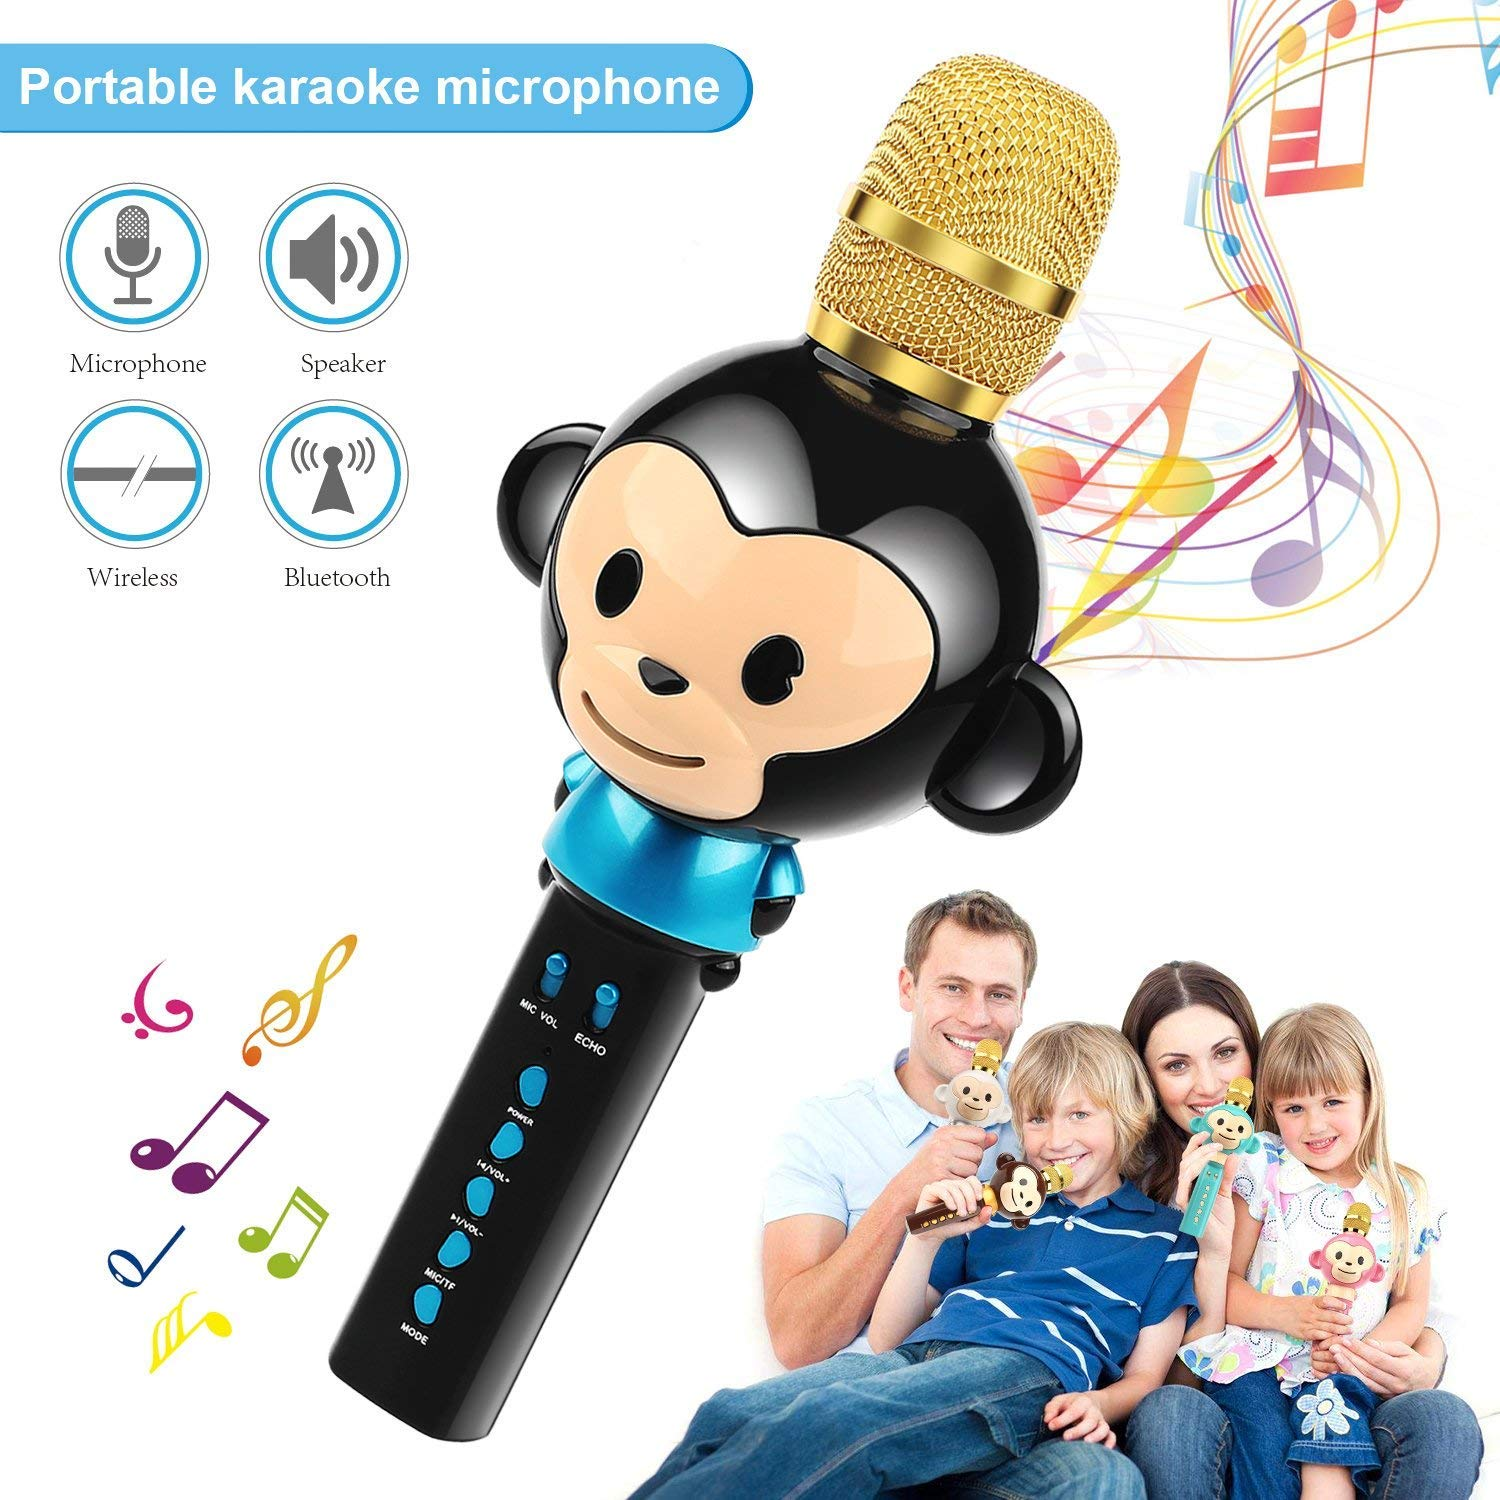 LingHui Kids Microphone Wireless Bluetooth Karaoke Microphone, 3-in-1 Portable Handheld Karaoke Mic Home Party Birthday Speaker Machine for iPhone/Android/iPad/Sony,PC and All Smartphone (Black)